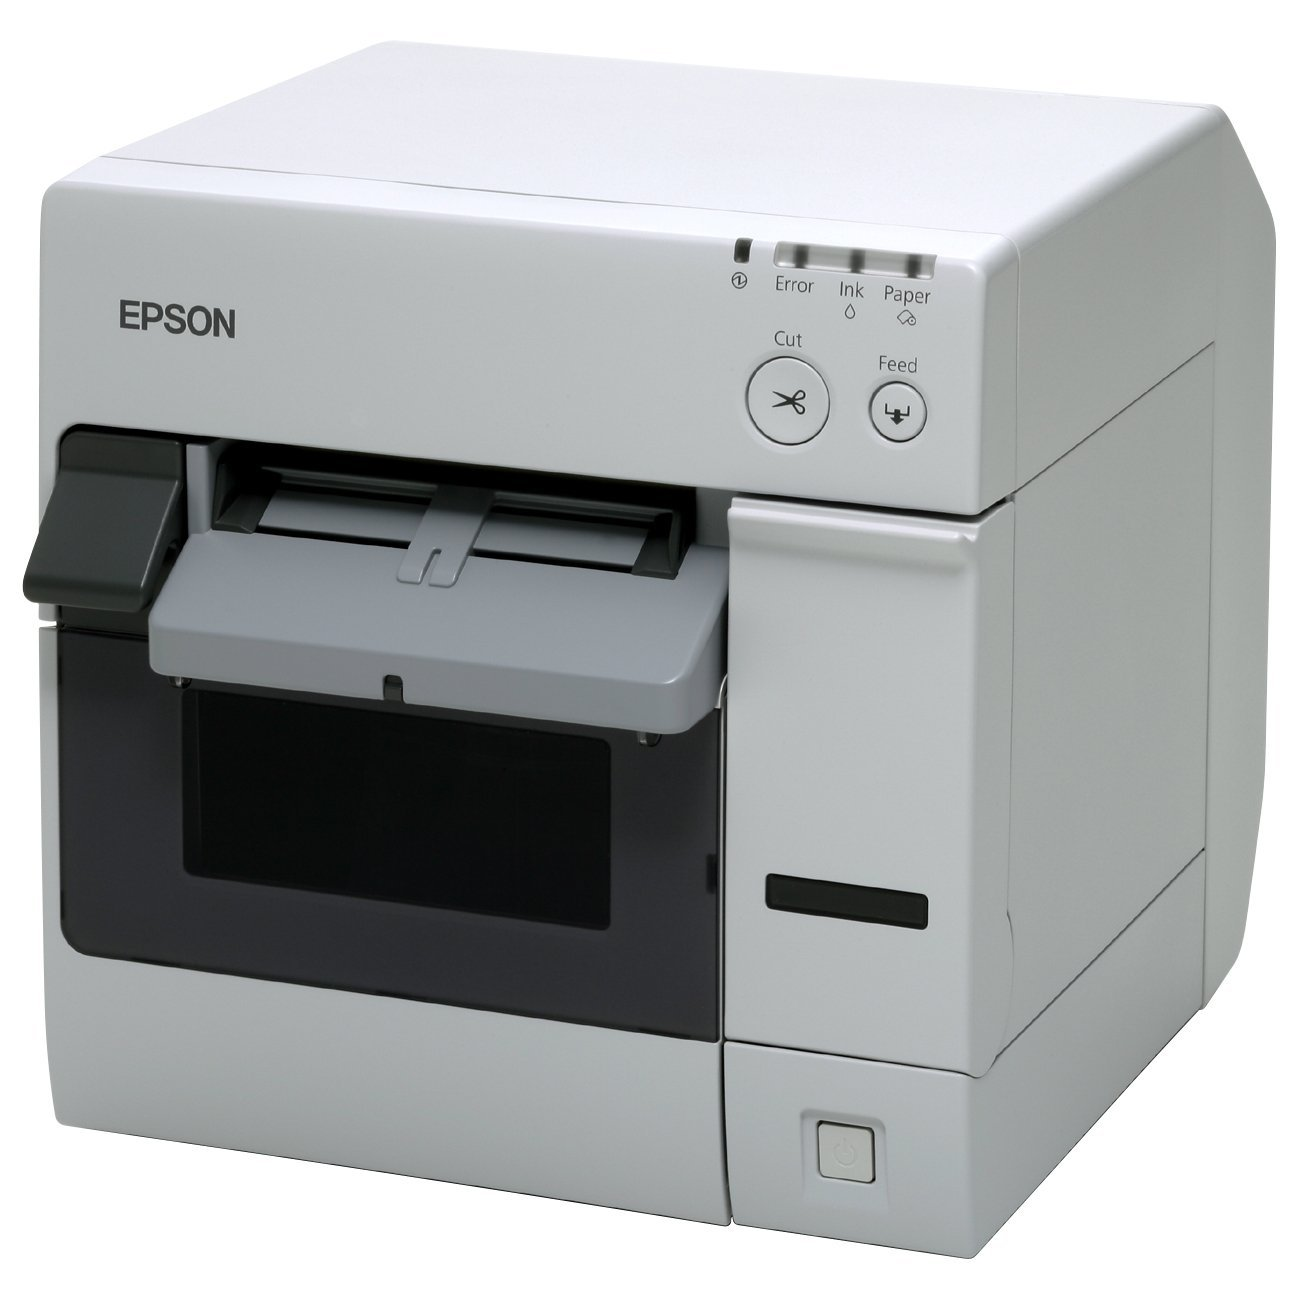 This is a picture of Crafty Colorworks Securcolor C3400 Inkjet Label Printer